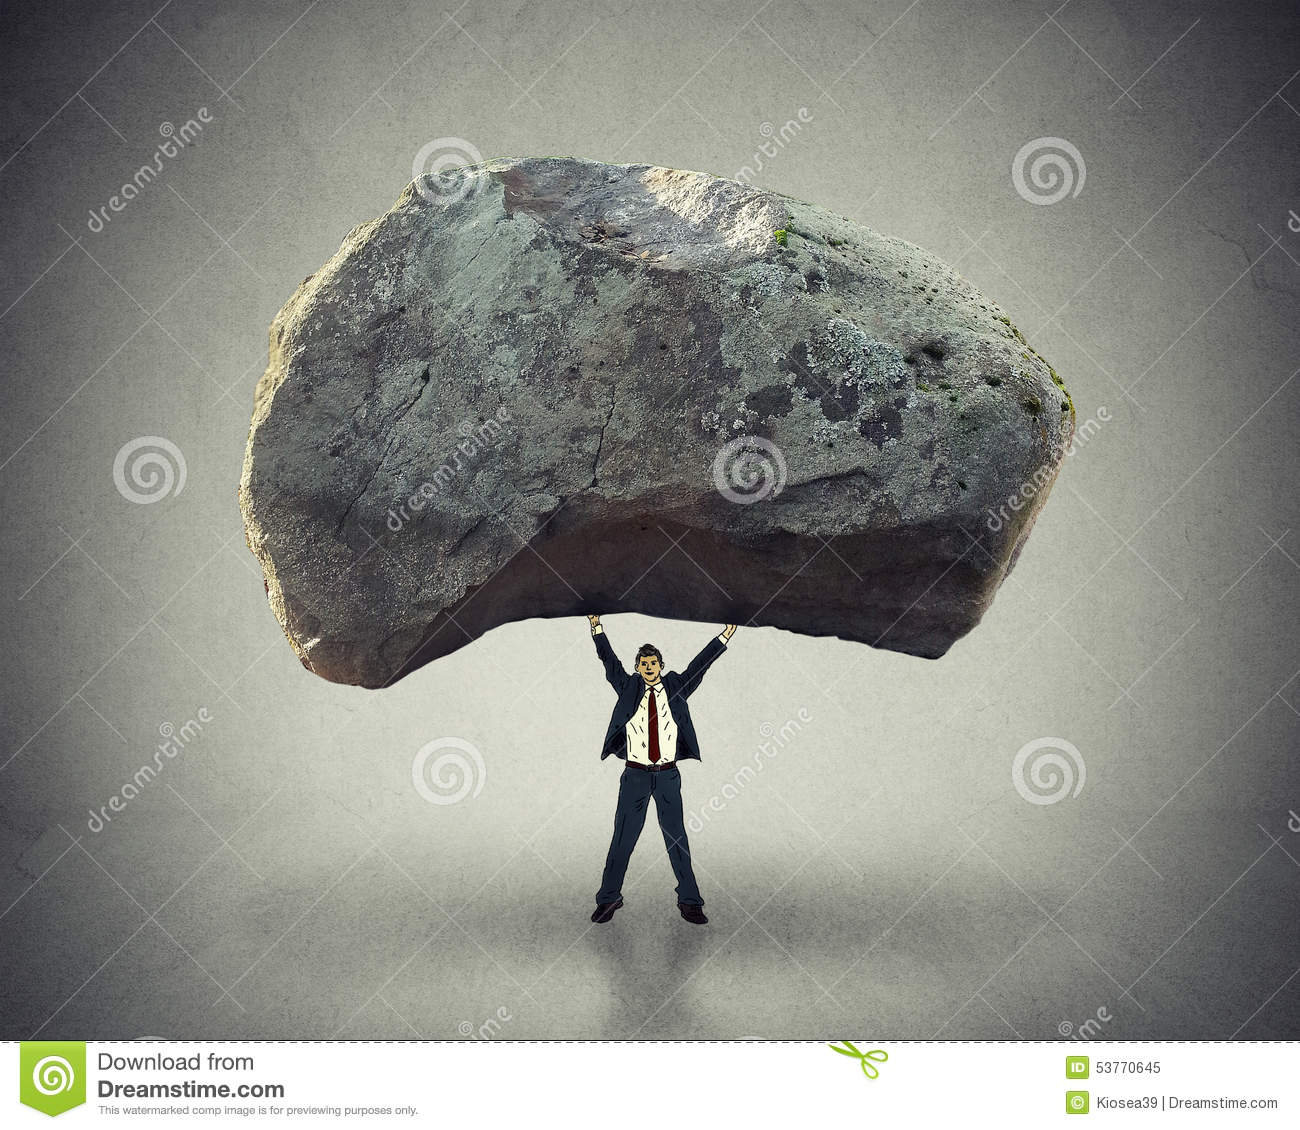 Power leadership ability to inspire man lifting up huge boulder